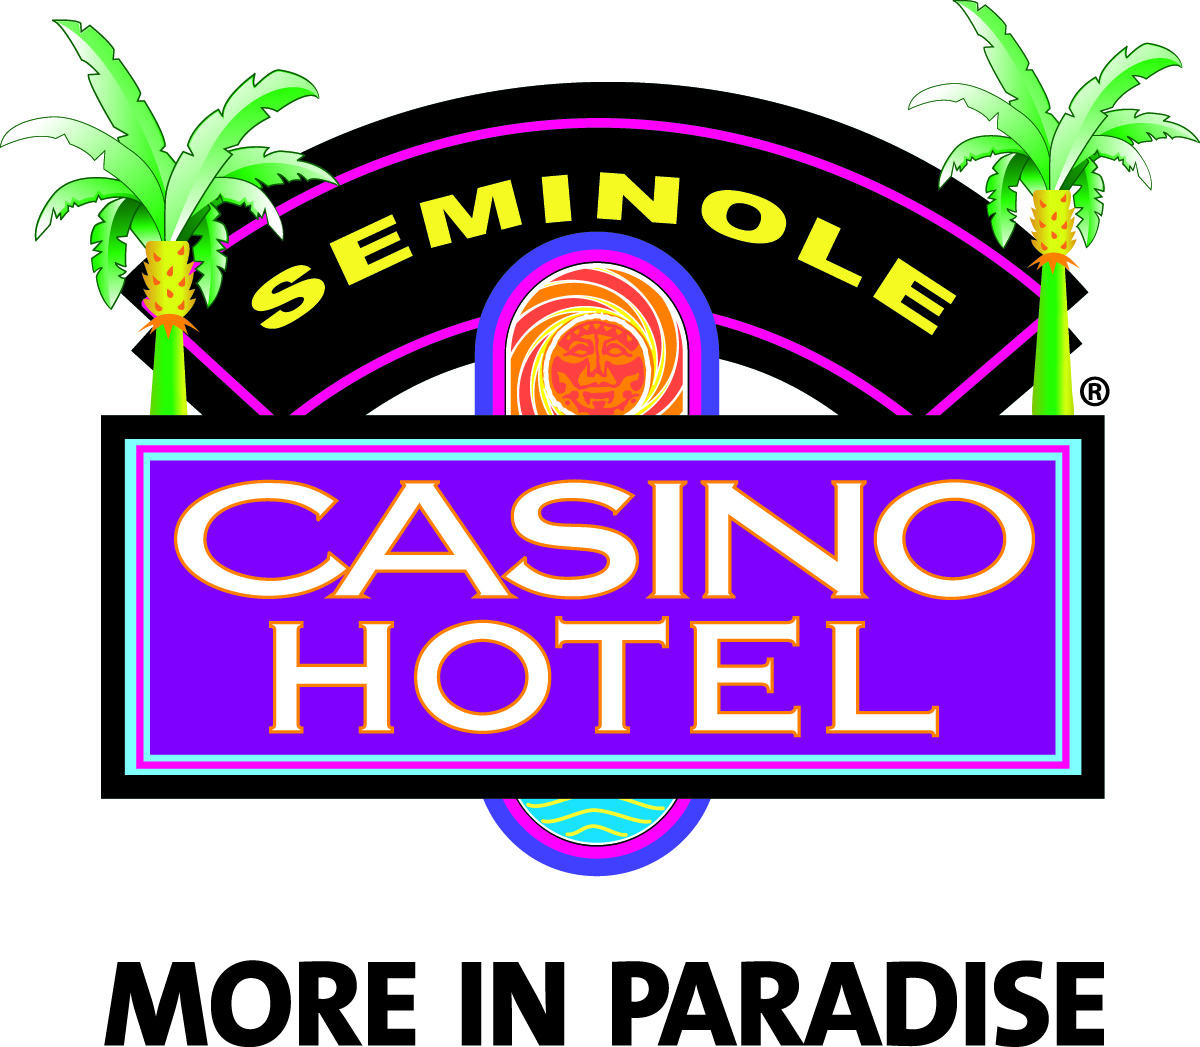 Seminole Casino Hotel - Located in the beautiful Paradise Coast of Immokalee, Florida. An upscale retreat with plenty of amenities for your comfort and convenience, the hotel offers 19 suites and 81 deluxe rooms. Relax by the pool with complimentary lounge chairs and towels. Stay fit in our cutting-edge Fitness Studio. Let our professional catering staff assist you in planning your next meeting or event in our new Seminole Center event space. Whether your stay is business or pleasure our hotel will fit your every need.